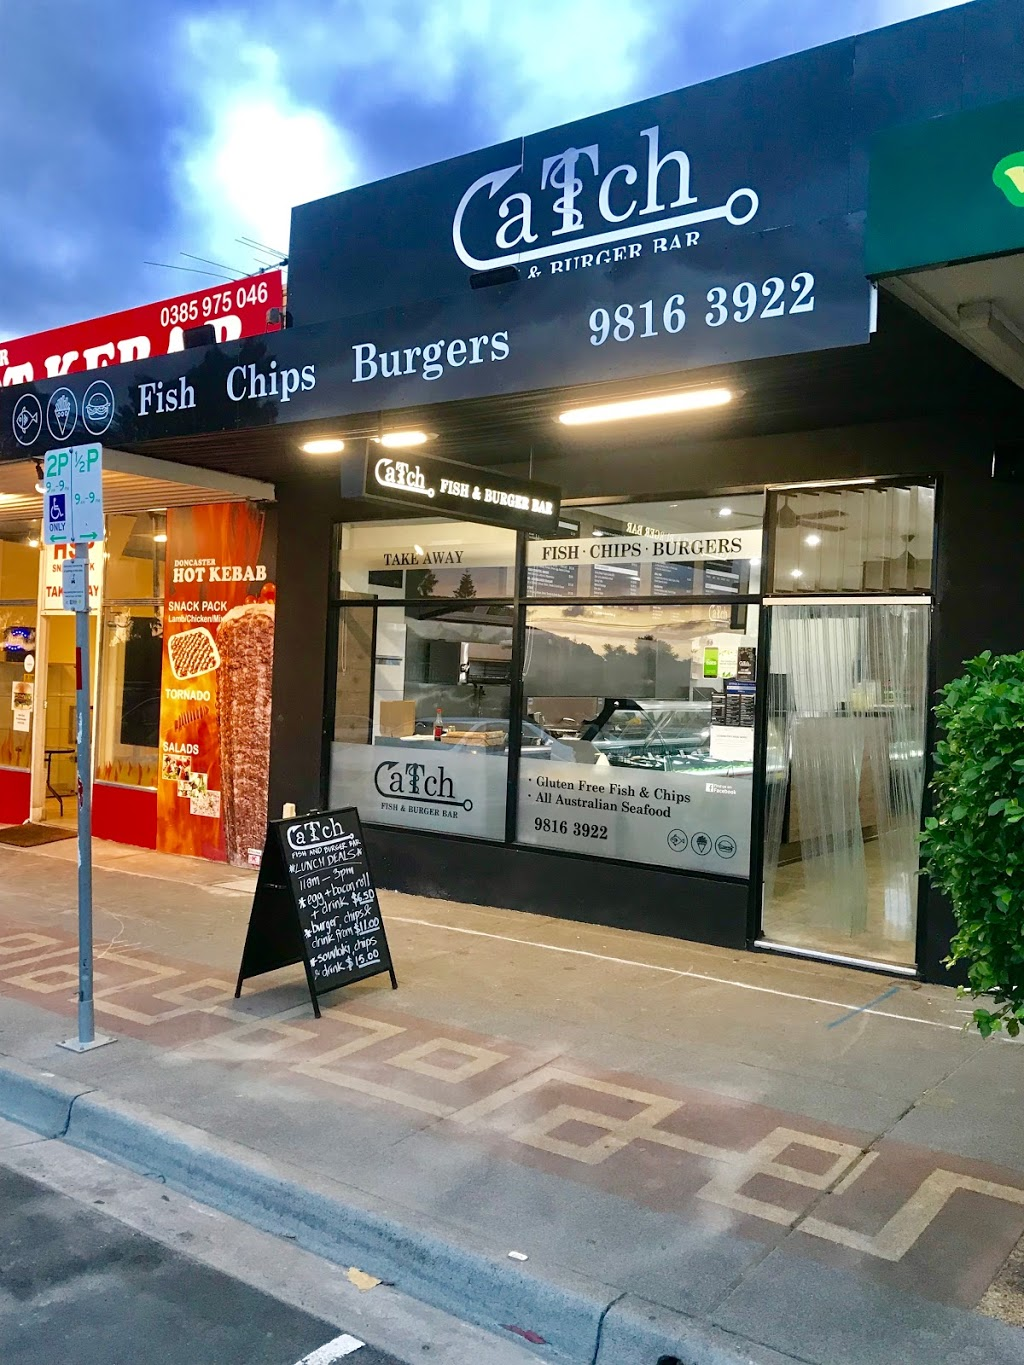 Catch fish & Burger Bar | meal takeaway | 5 Village Ave, Doncaster VIC 3108, Australia | 0398163922 OR +61 3 9816 3922